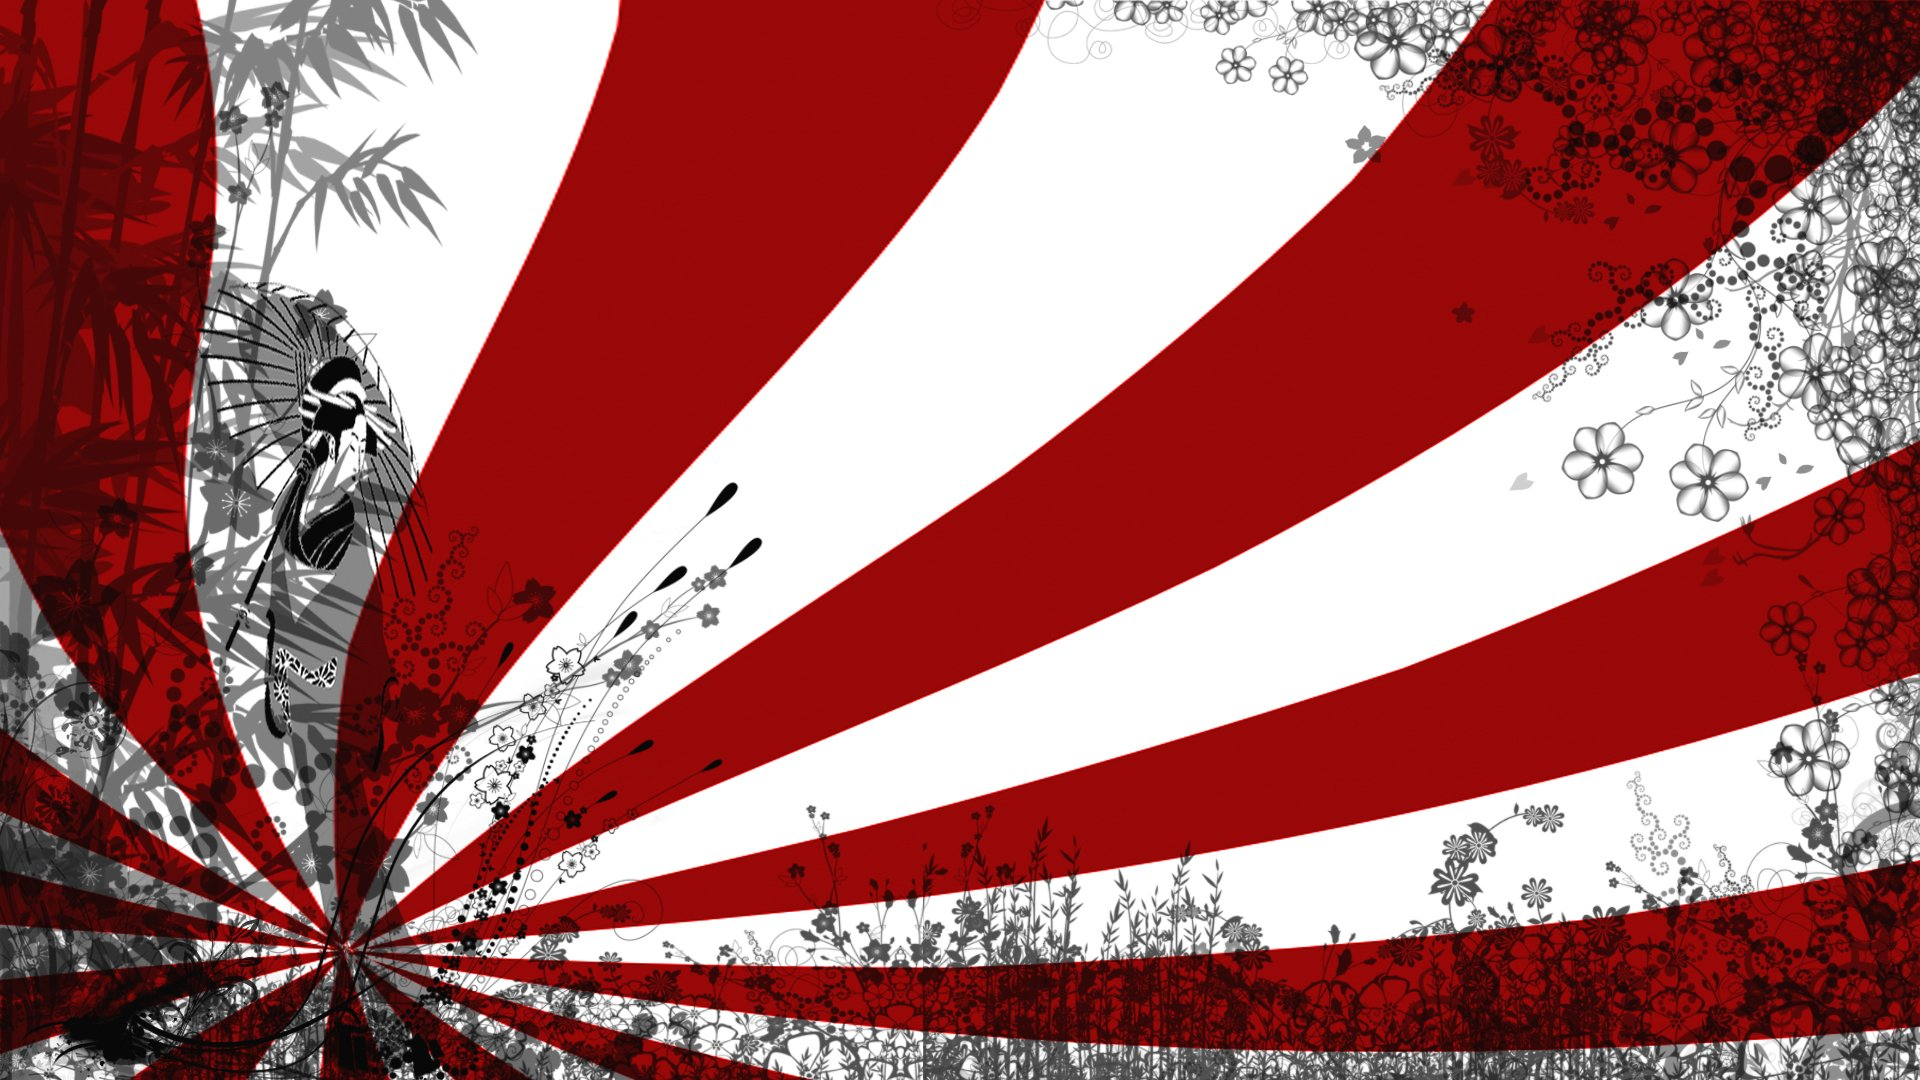 Japanese Flag Wallpaper Download 1920x1080